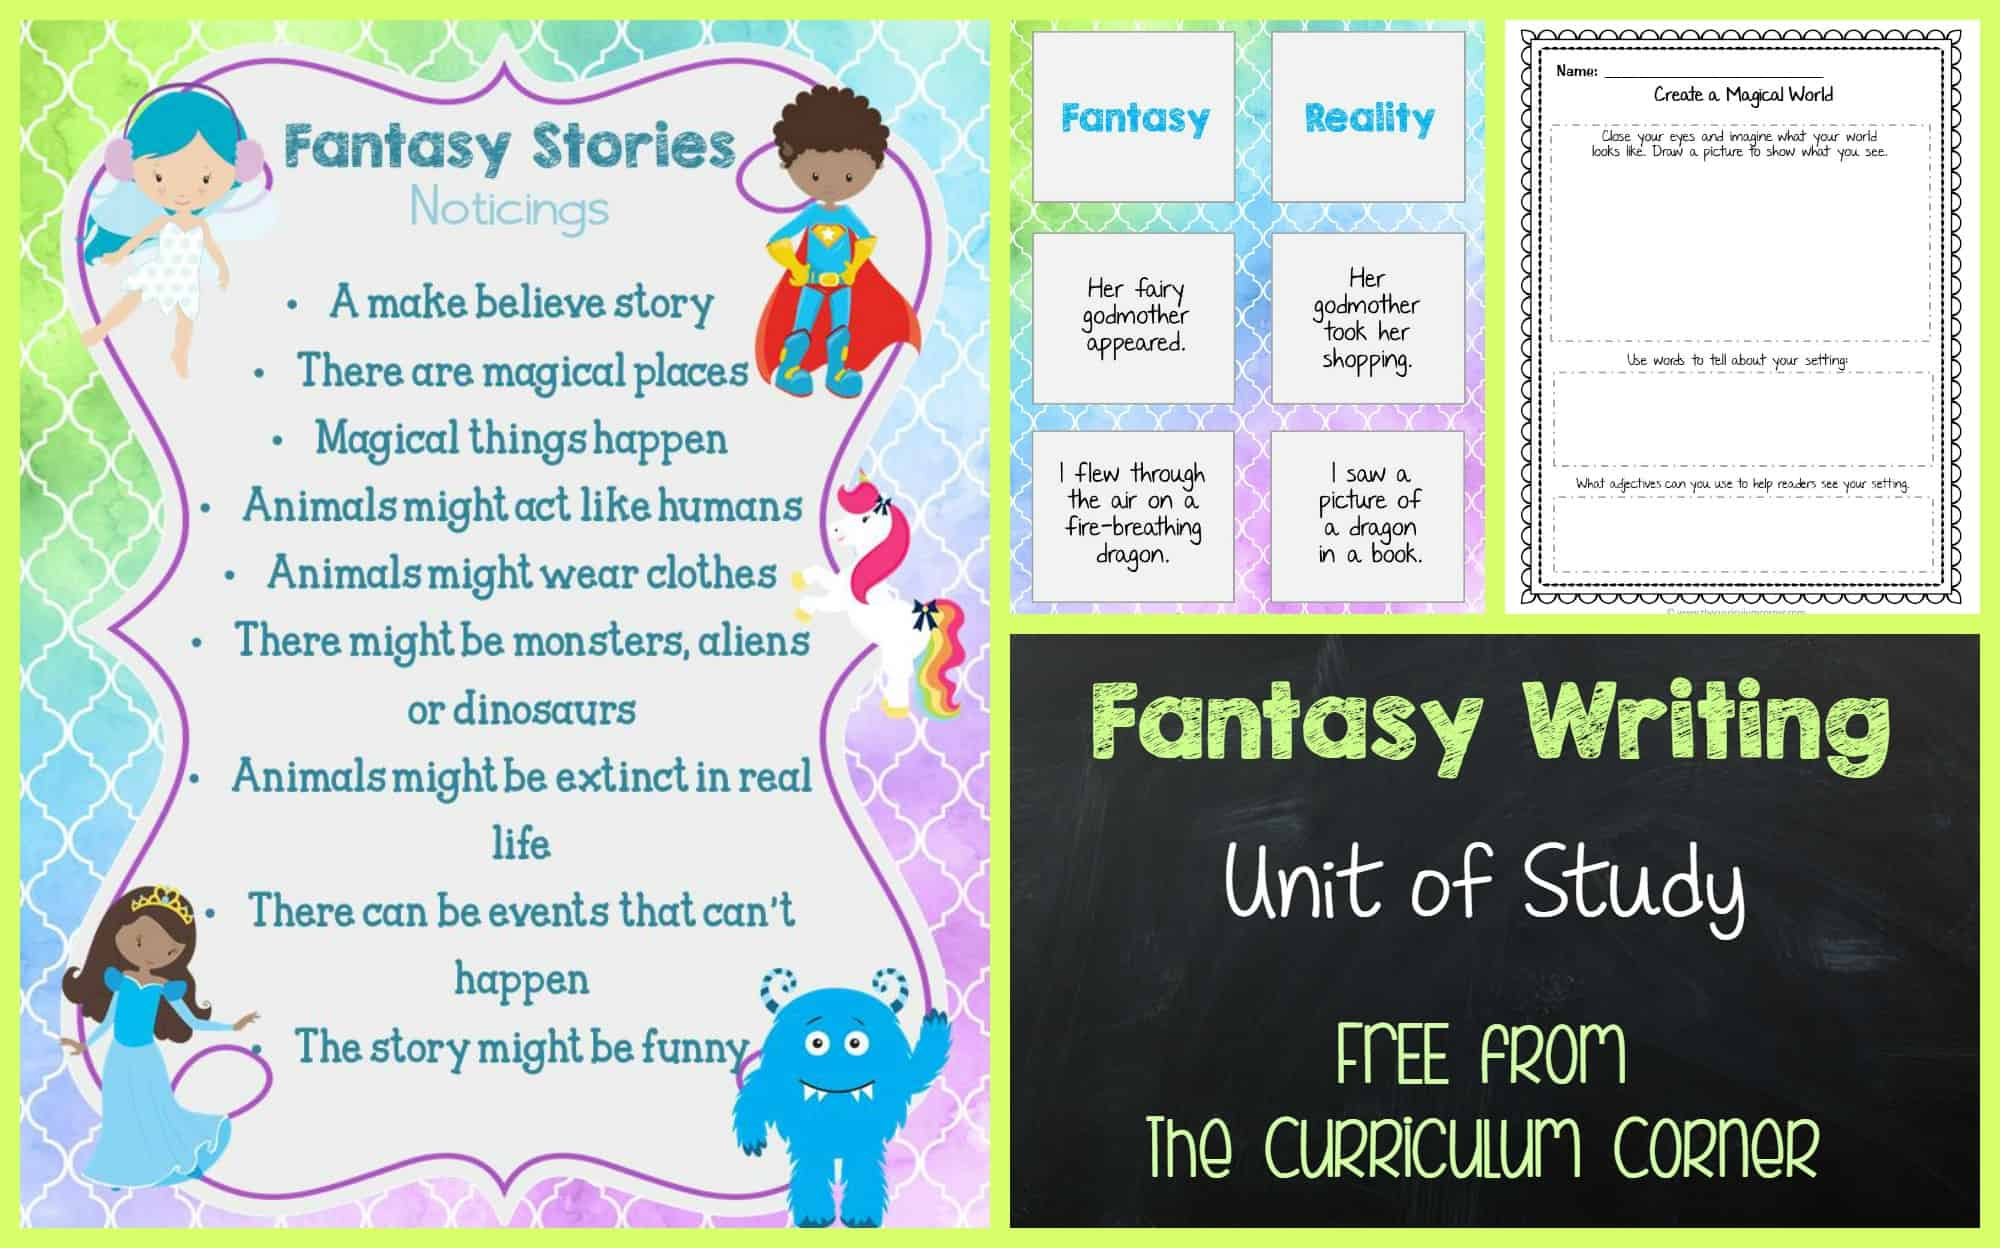 Fantasy Writing Unit Of Study